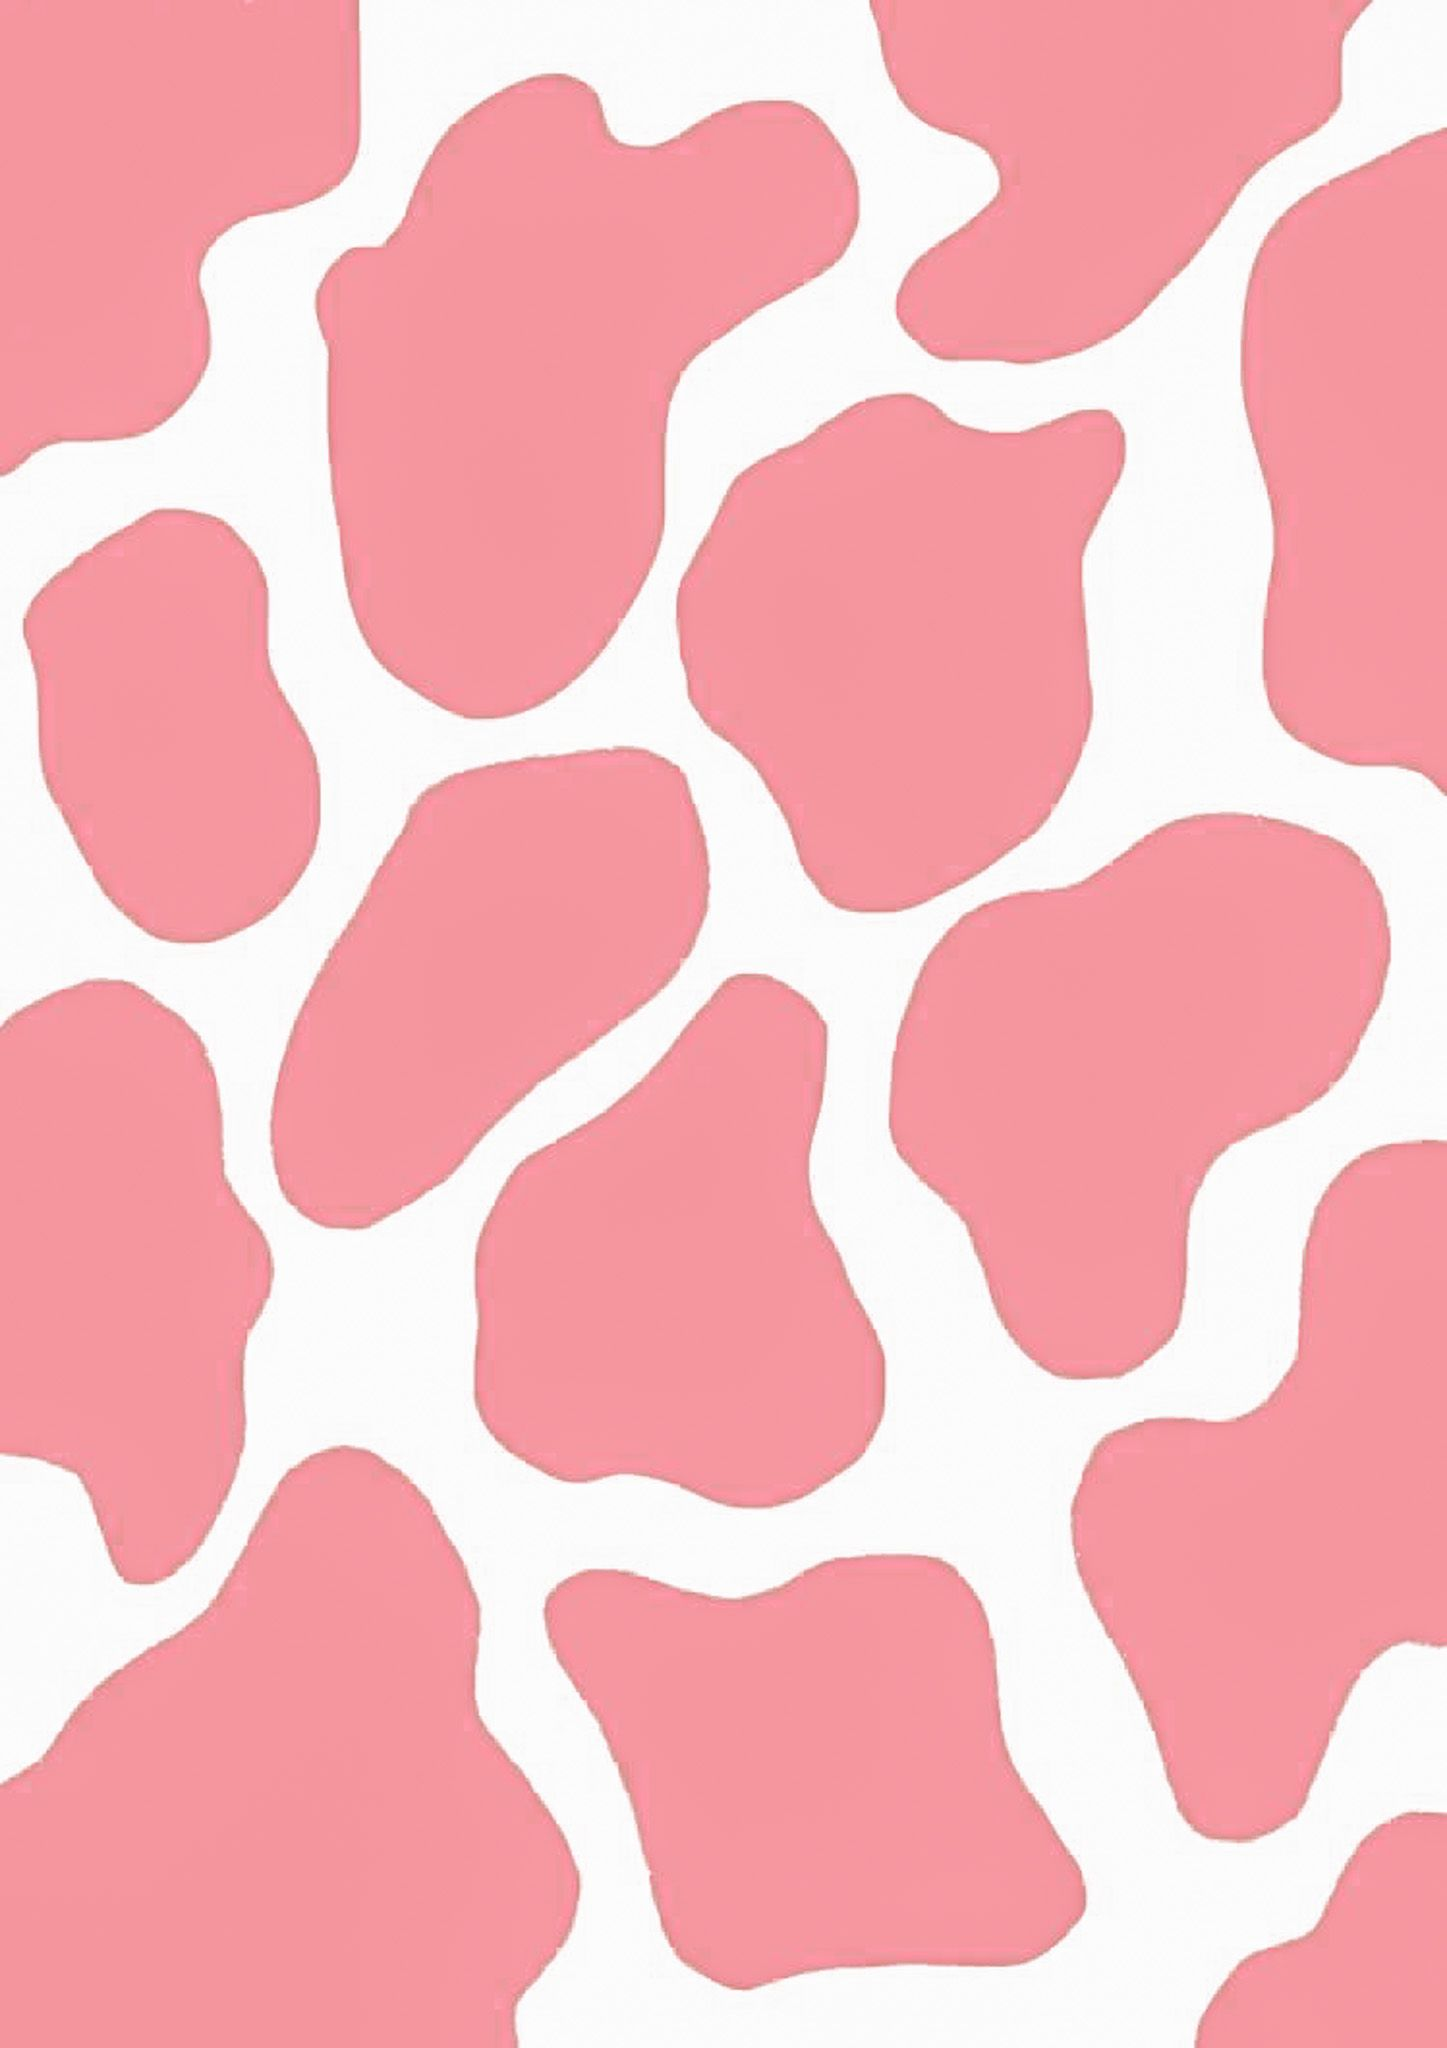 Pin by LillyFullpiy on Old aesthetic | Cow print wallpaper ...